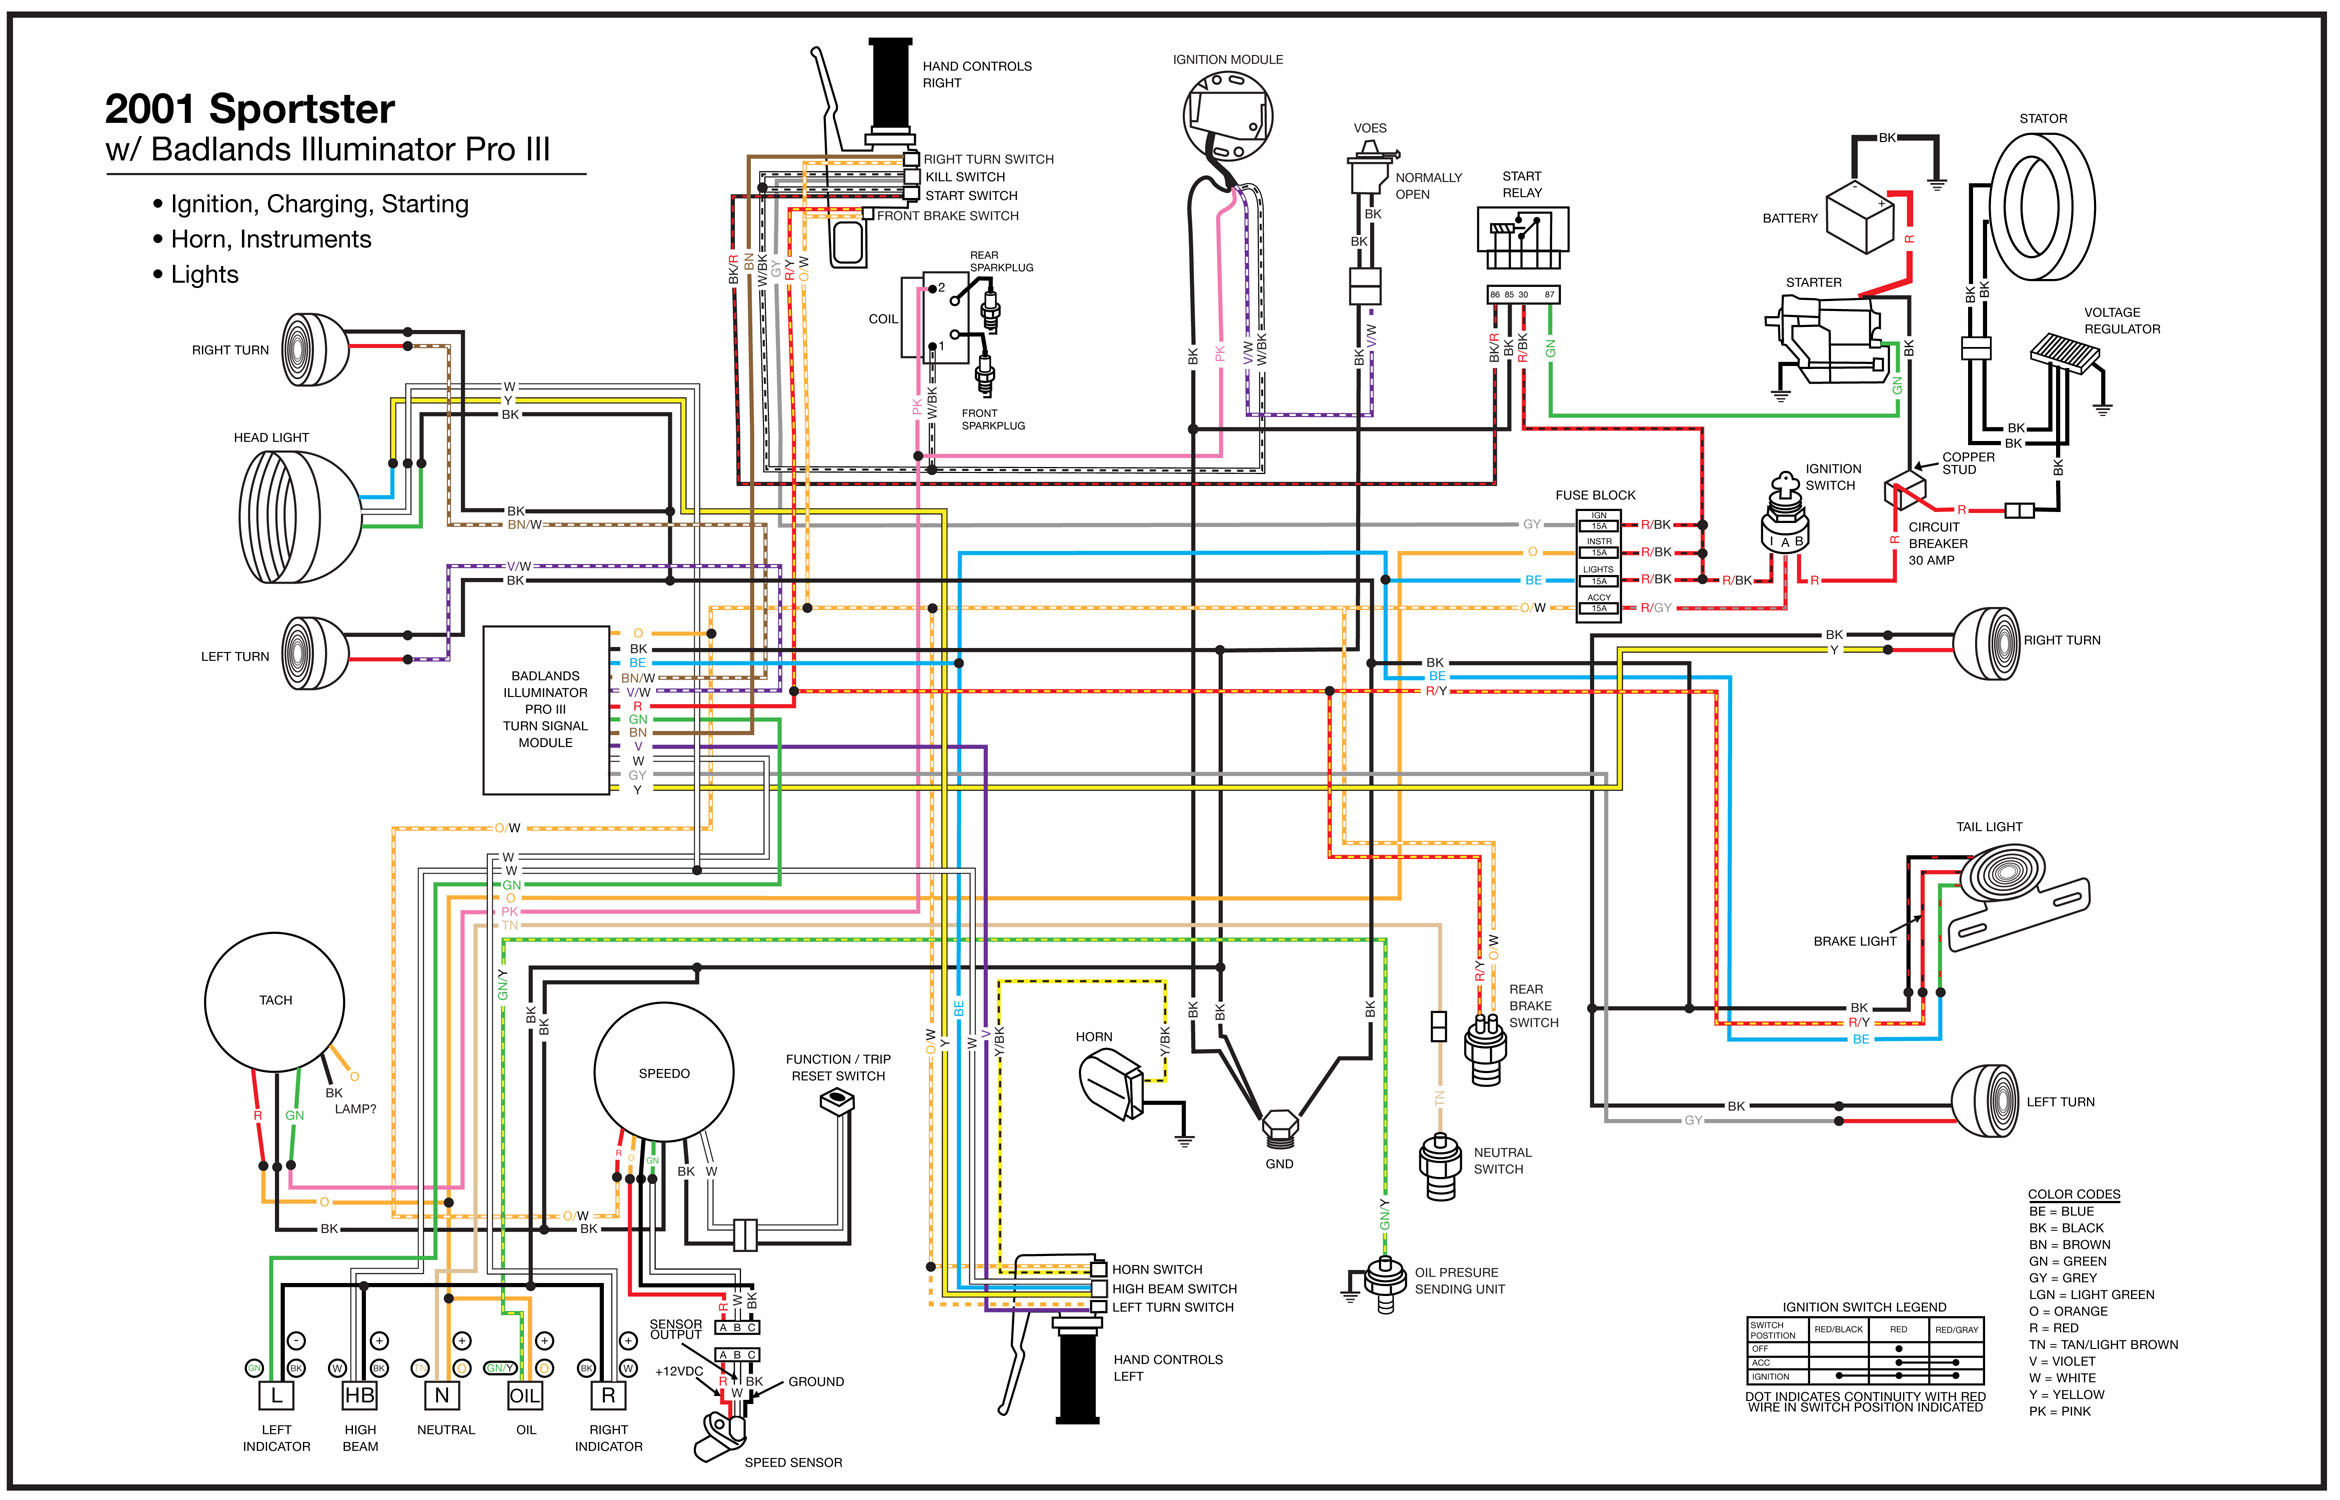 Harley Davidson 2014 Softail Wiring Diagram - Wiring Diagram Data - Harley Davidson Ignition Switch Wiring Diagram